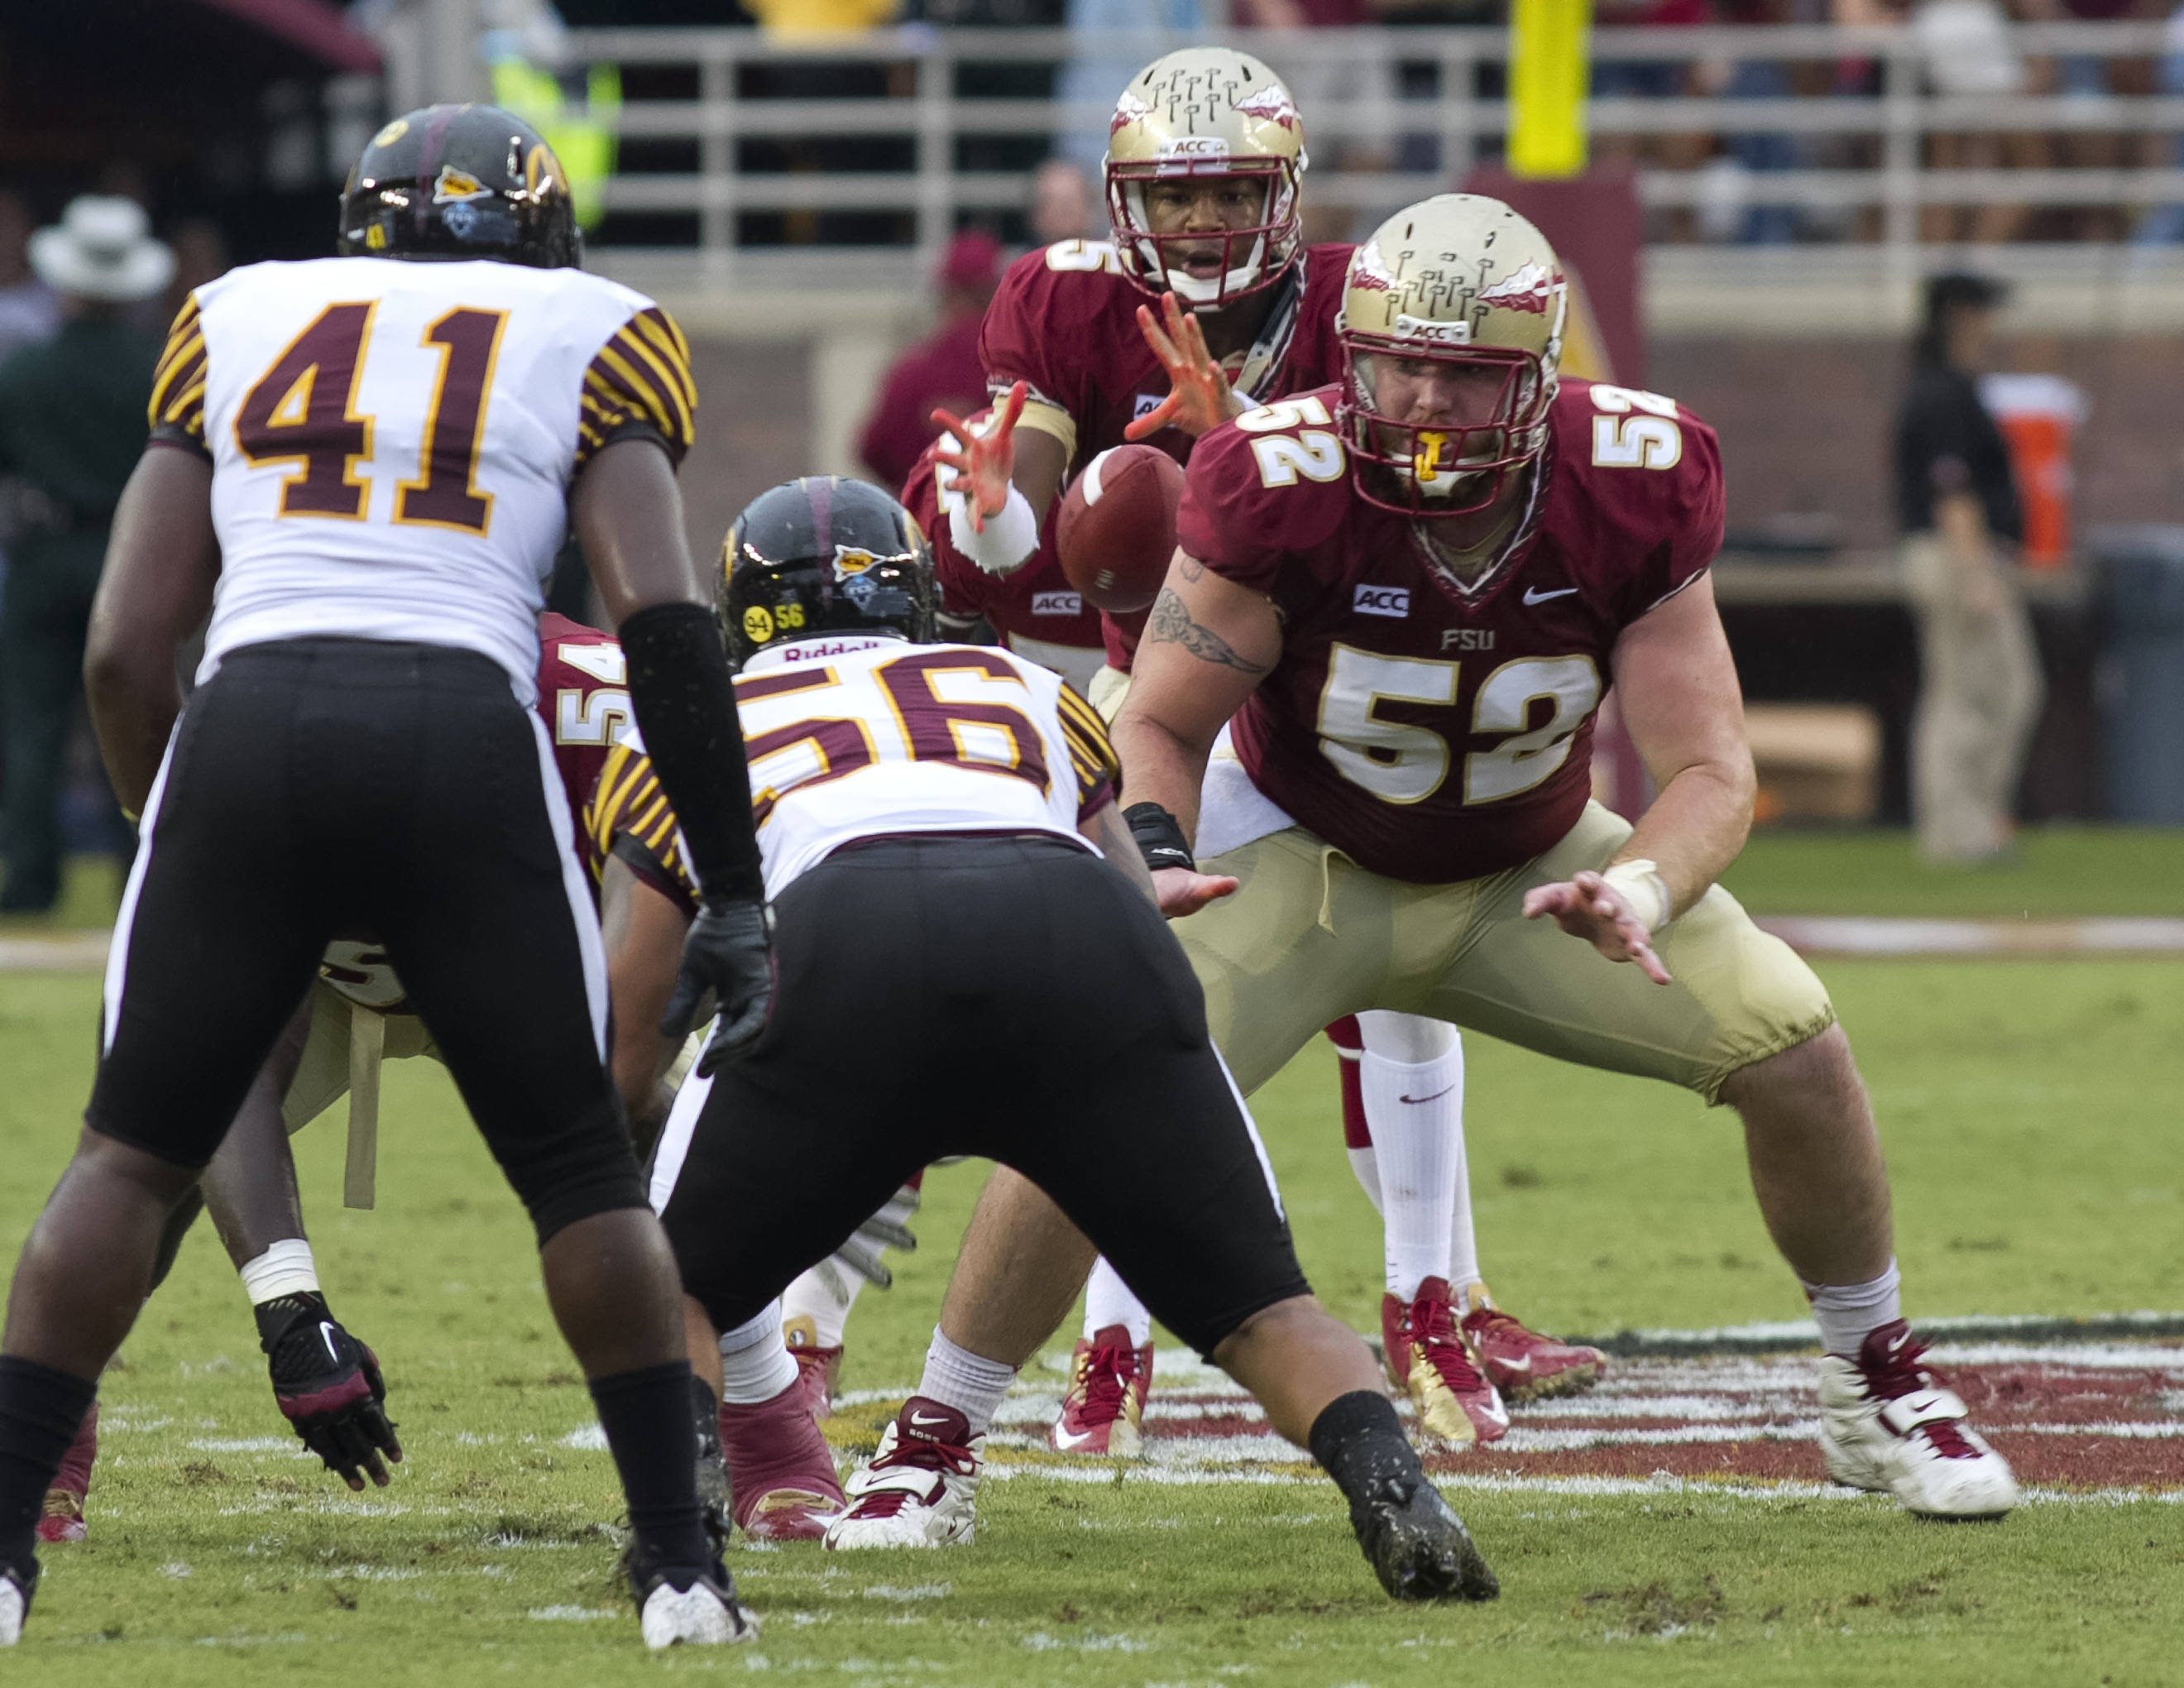 Jameis Winston (5), Bryan Stork (52), FSU vs Bethune-Cookman,  9-21-13, (Photo by Steve Musco)